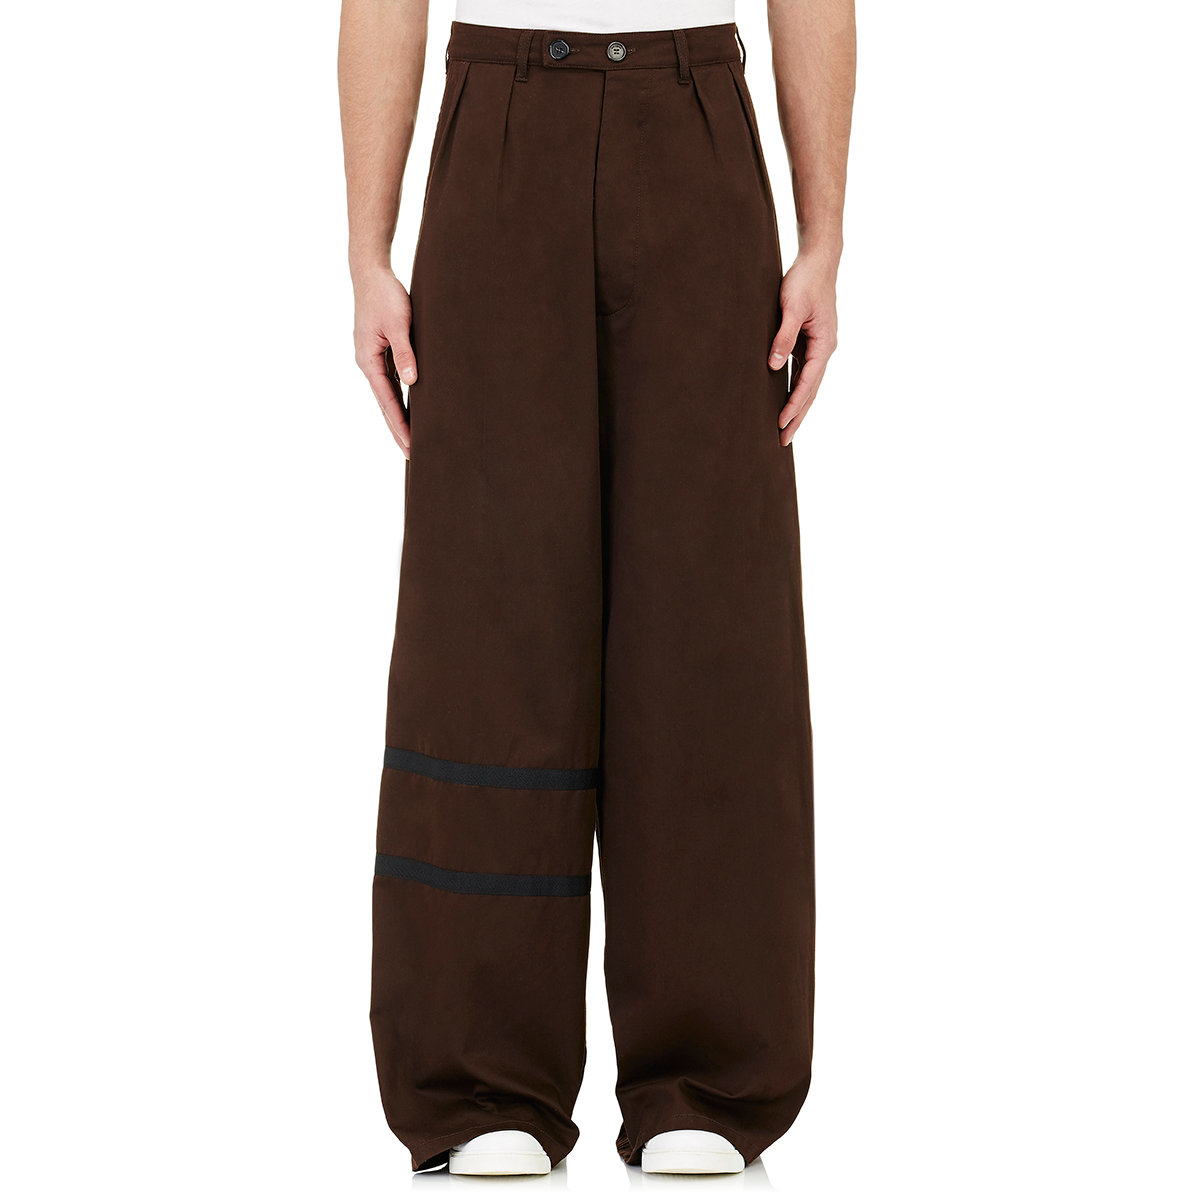 Find great deals on eBay for mens wide leg pants. Shop with confidence.